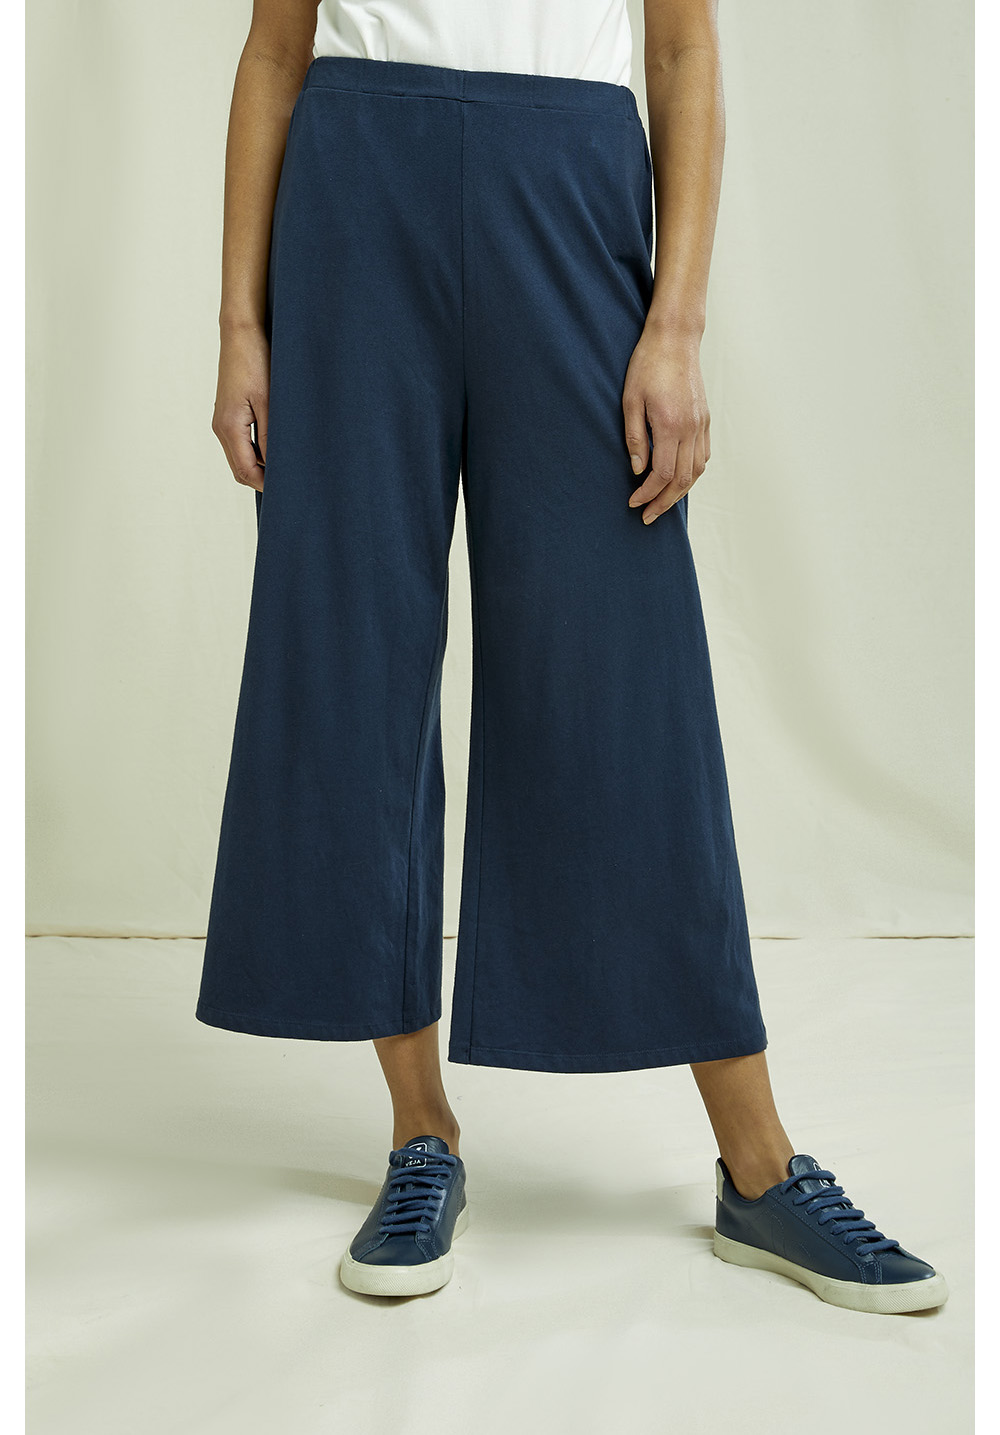 Chandre Trousers in Navy 10